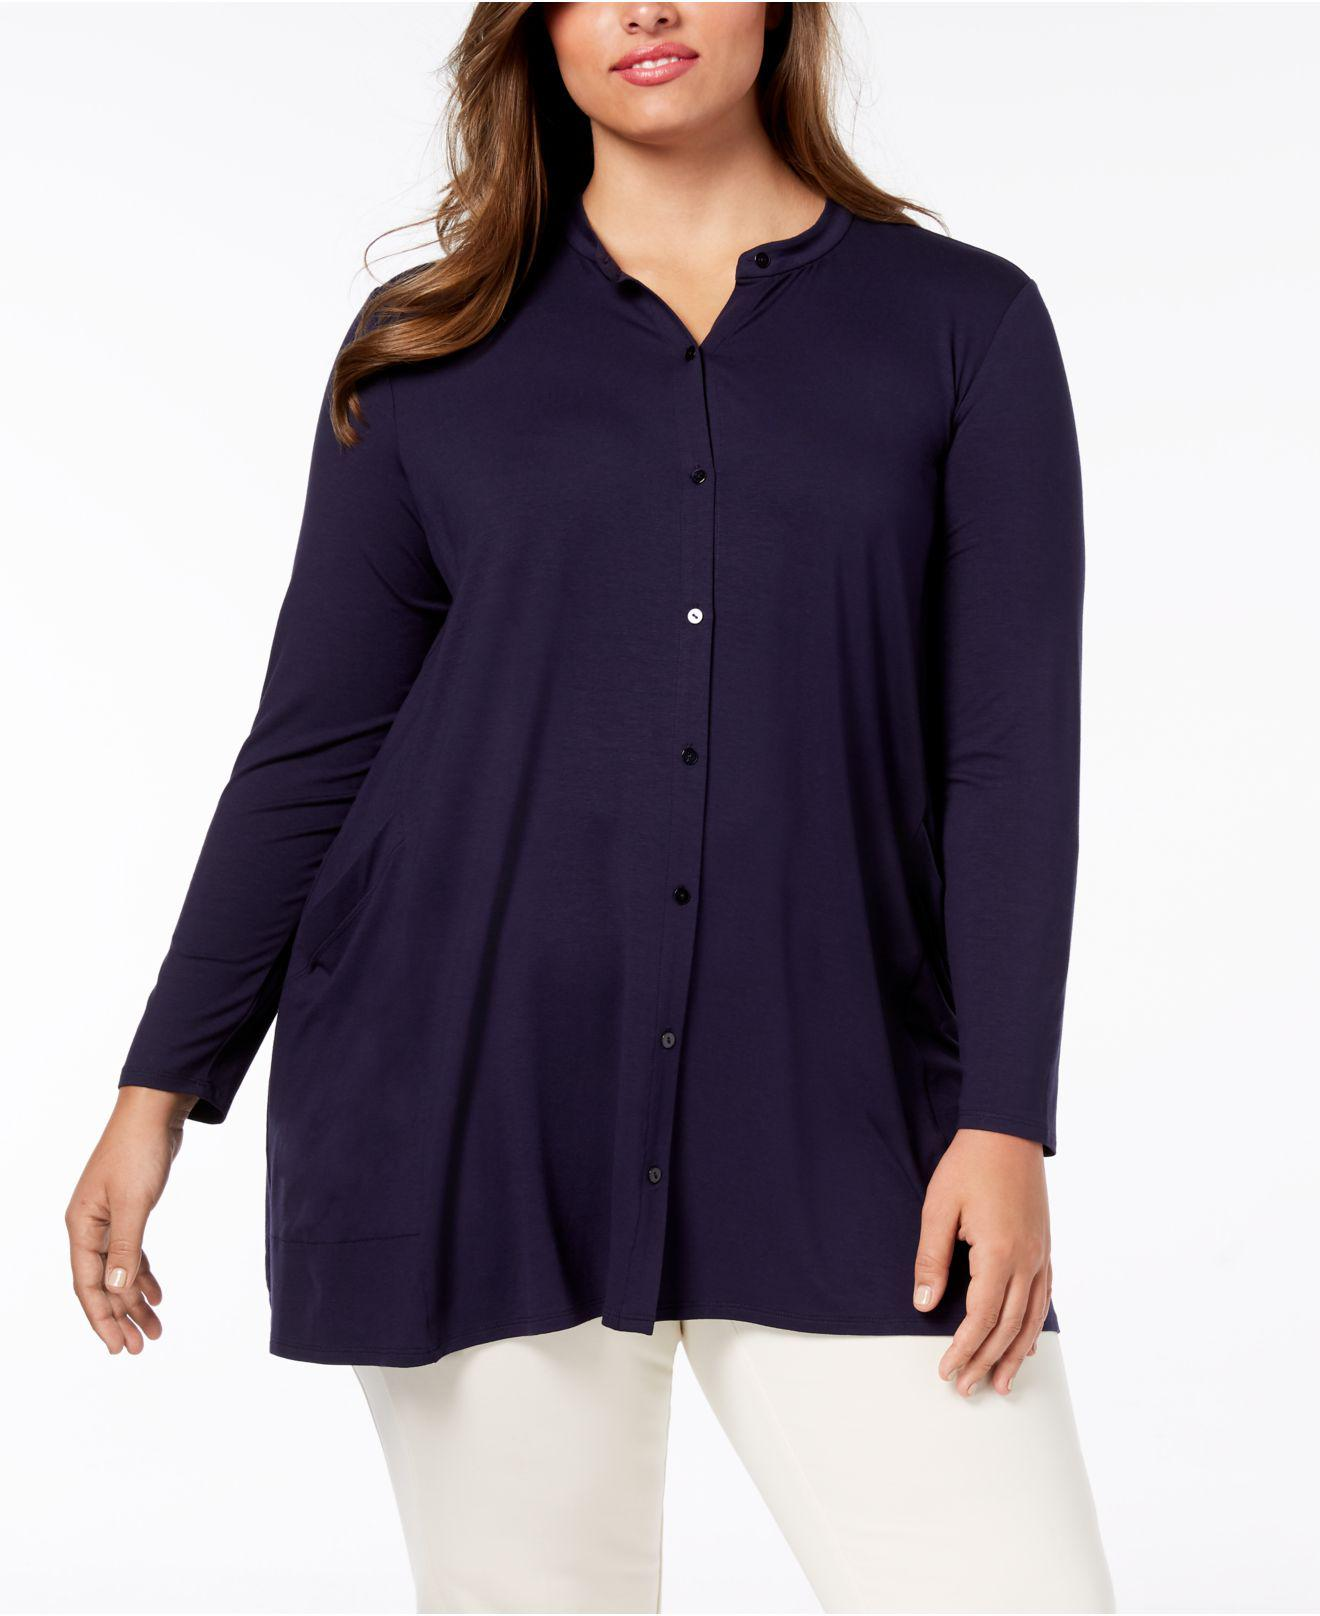 83b1951ddc307 Lyst - Eileen Fisher Plus-size Stretch Jersey Mandarin-collar Tunic ...